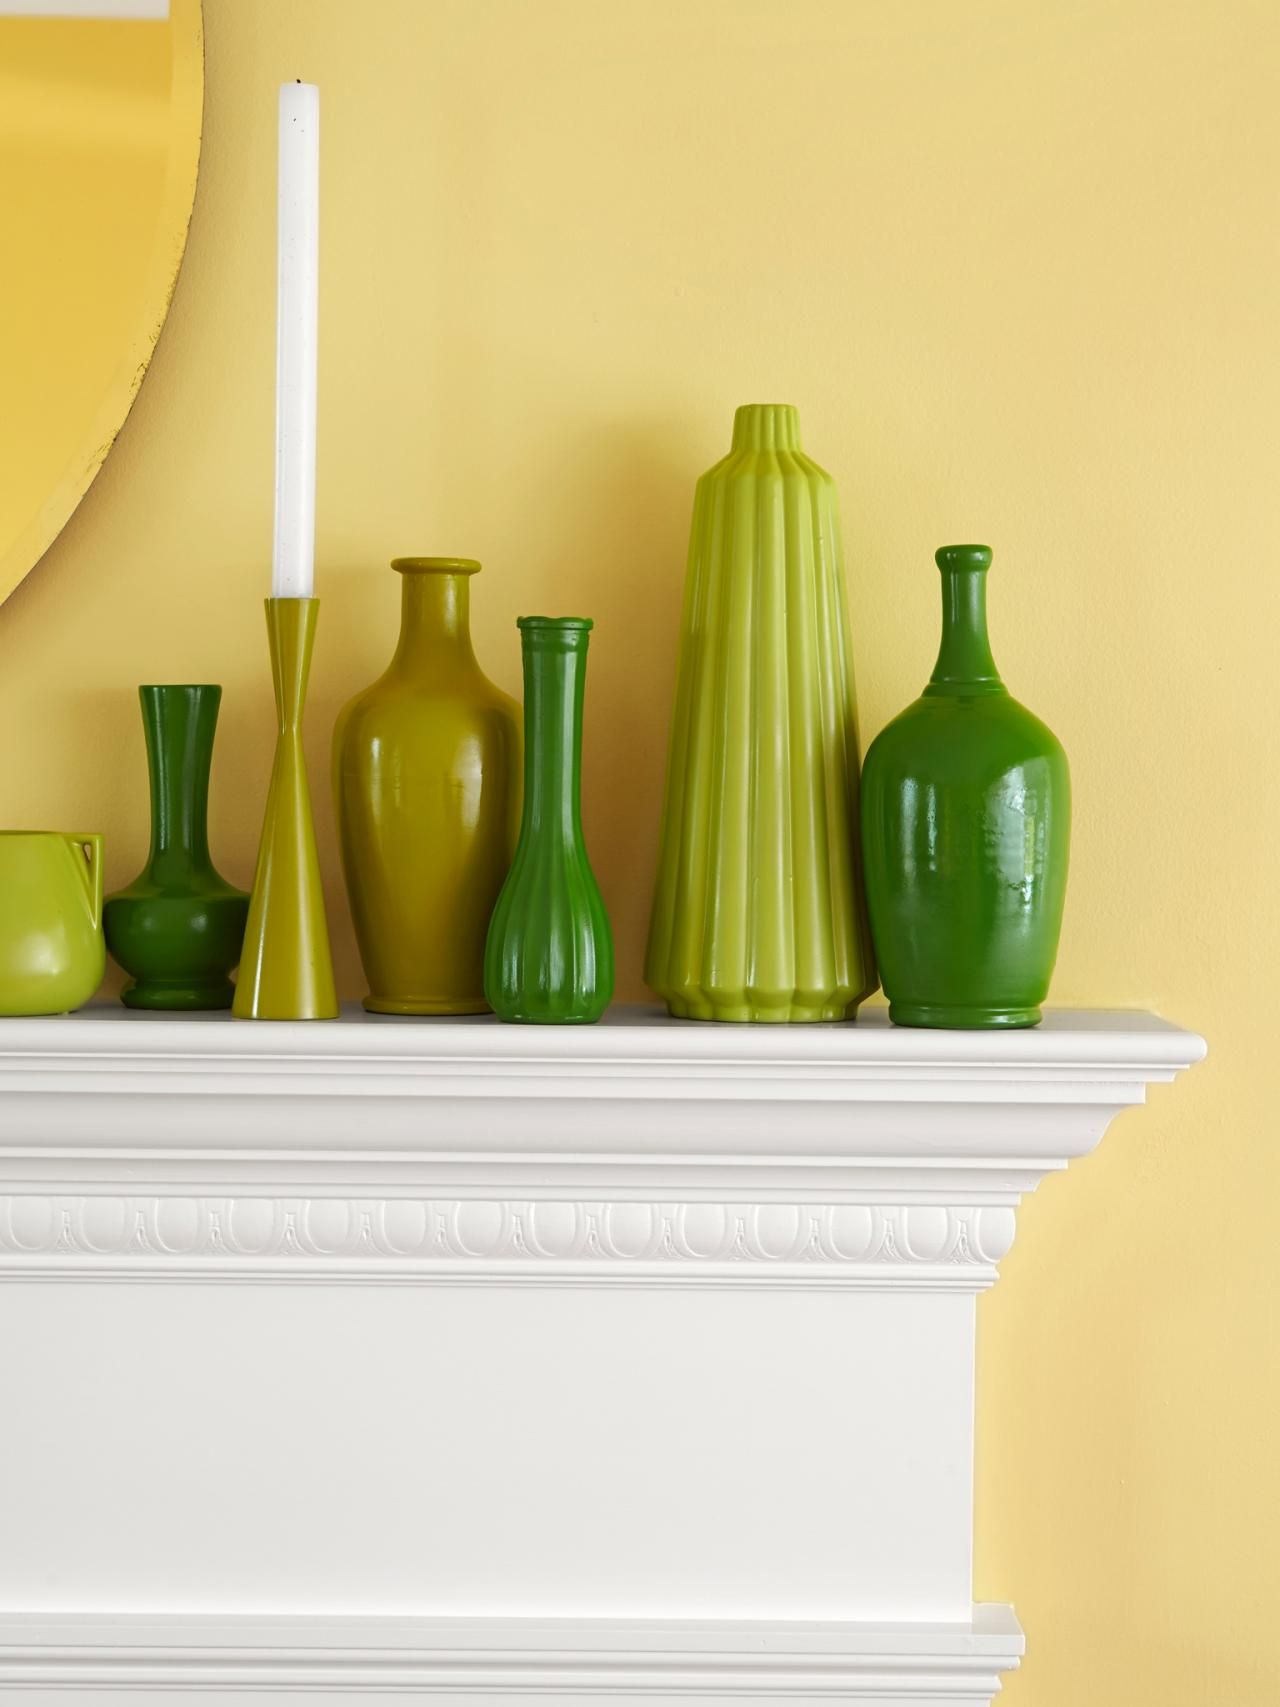 Mismatches from a thrift store, 15 total Green vase